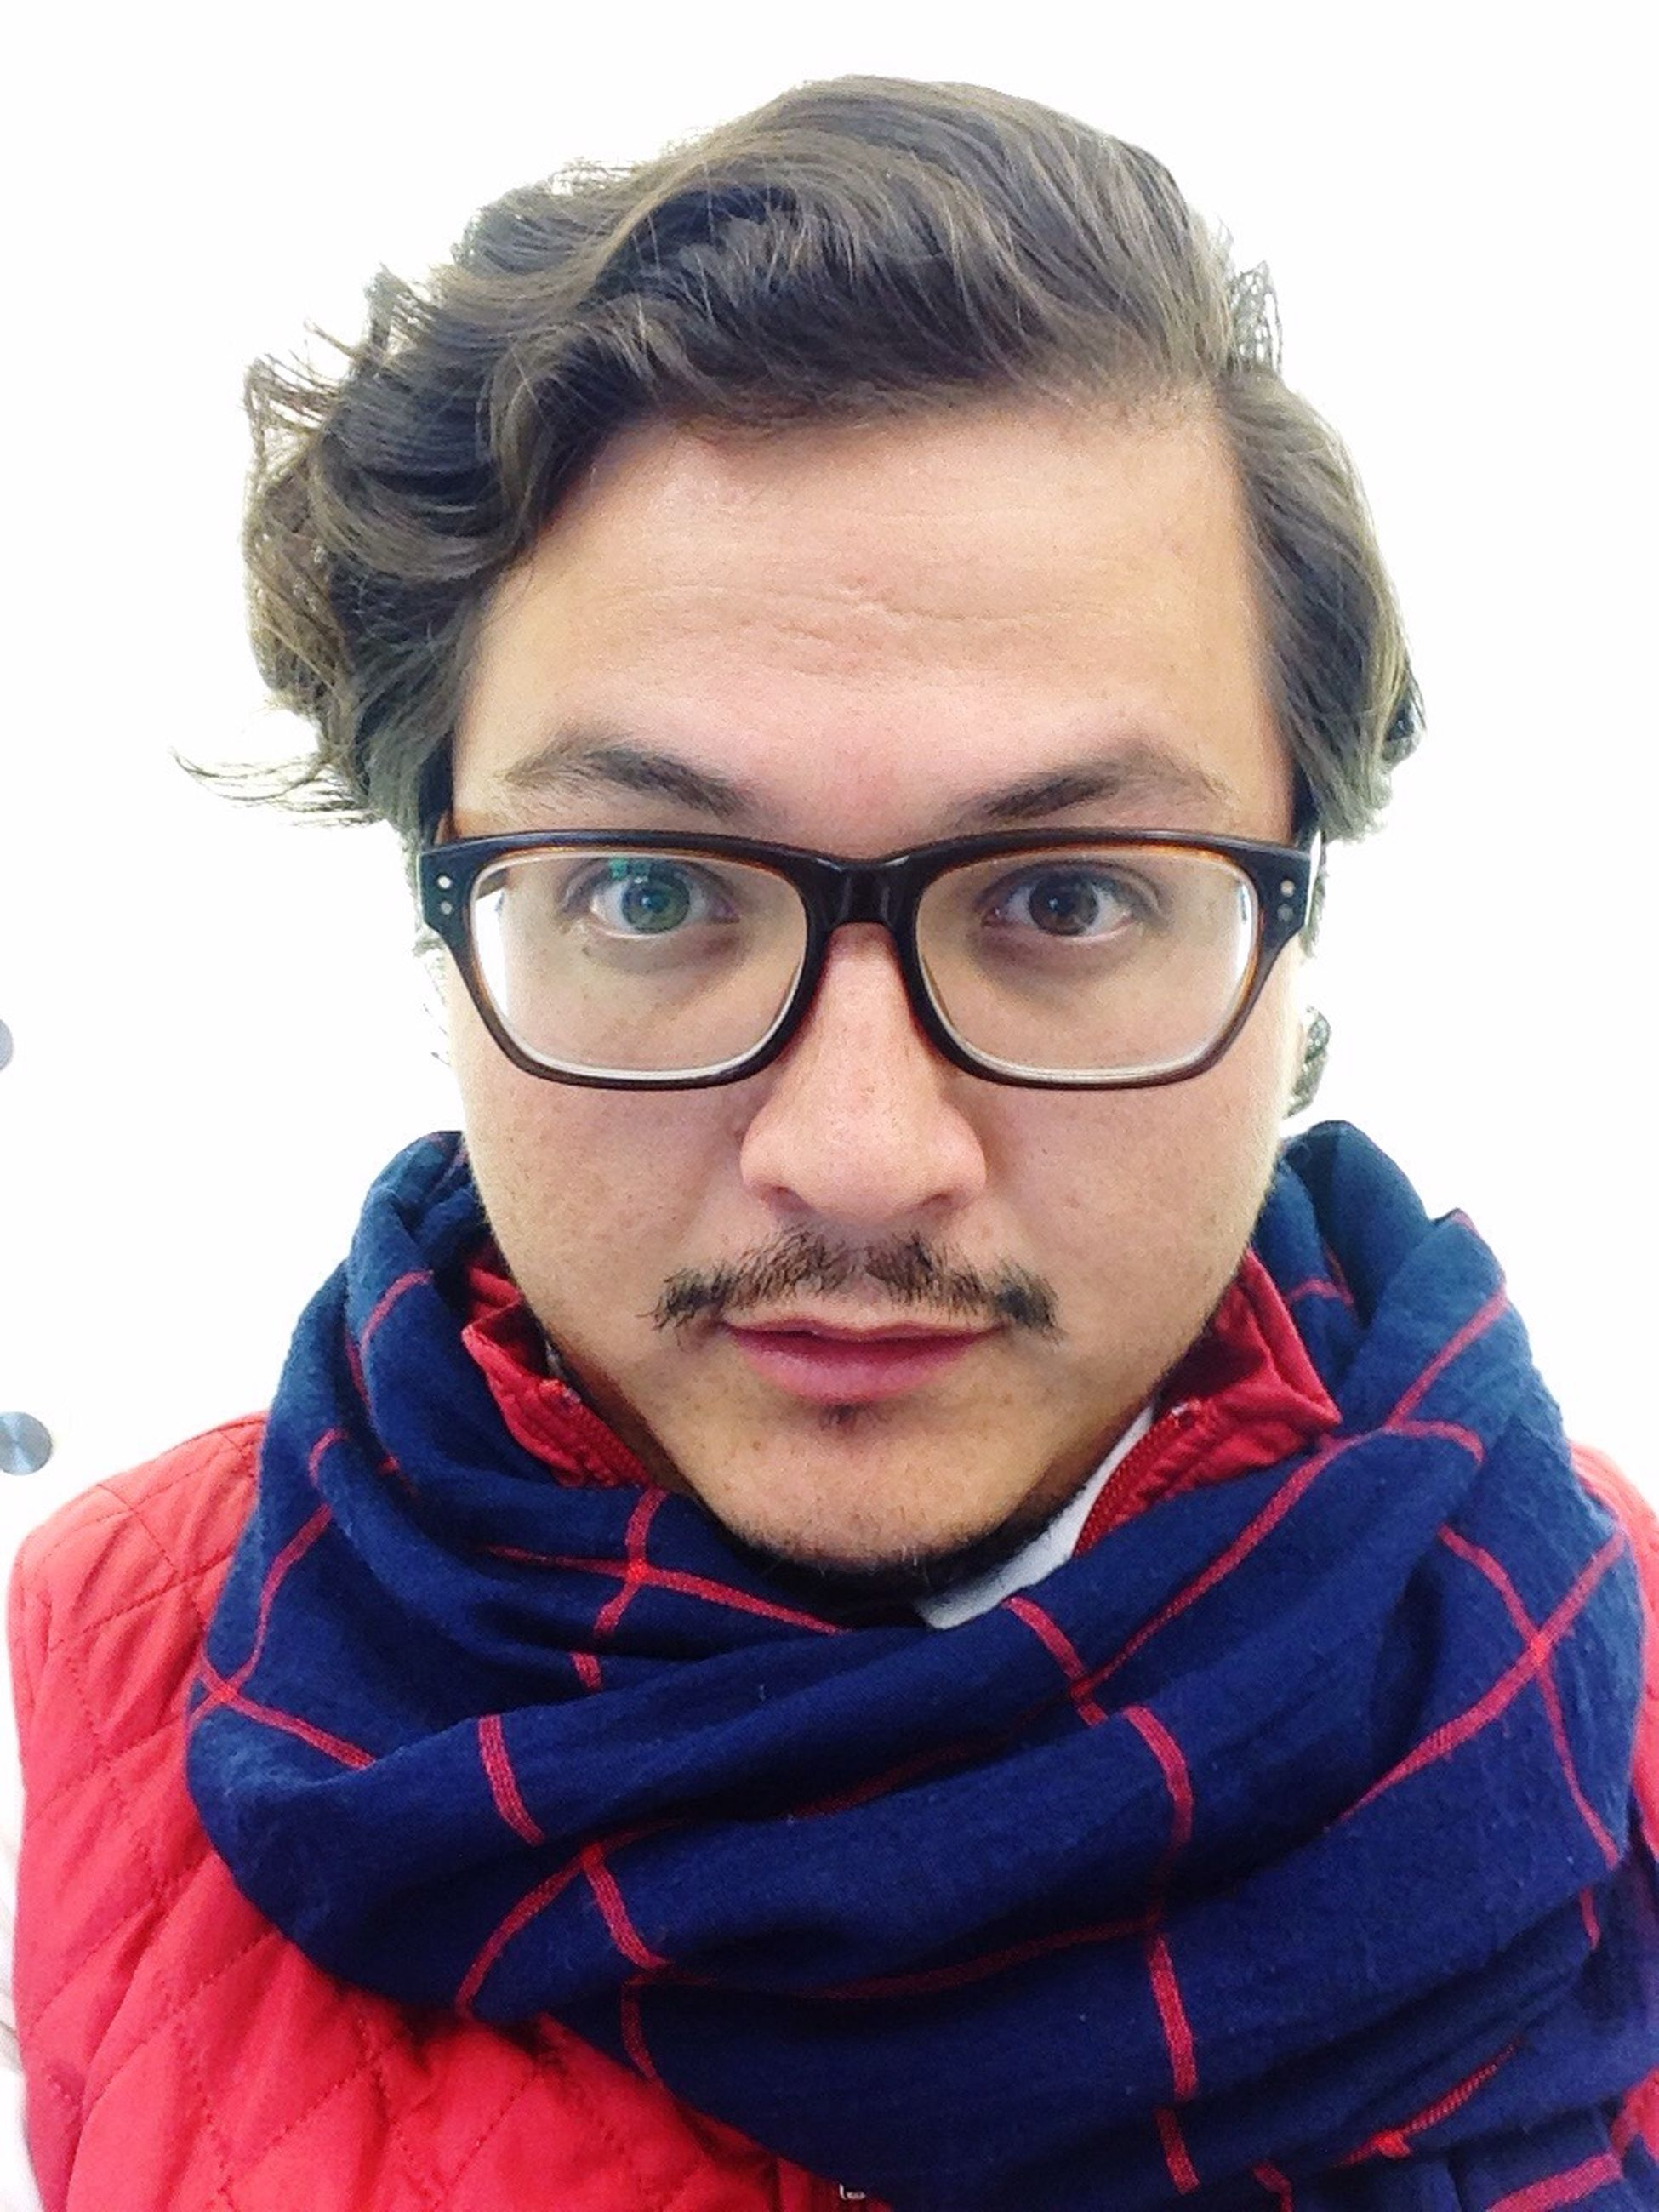 looking at camera, portrait, real people, one person, human face, facial expression, red, sweater, studio shot, eyeglasses, handsome, mature adult, young adult, front view, scarf, lifestyles, adults only, making a face, facial hair, only men, men, close-up, senior adult, white background, warm clothing, adult, people, one man only, human body part